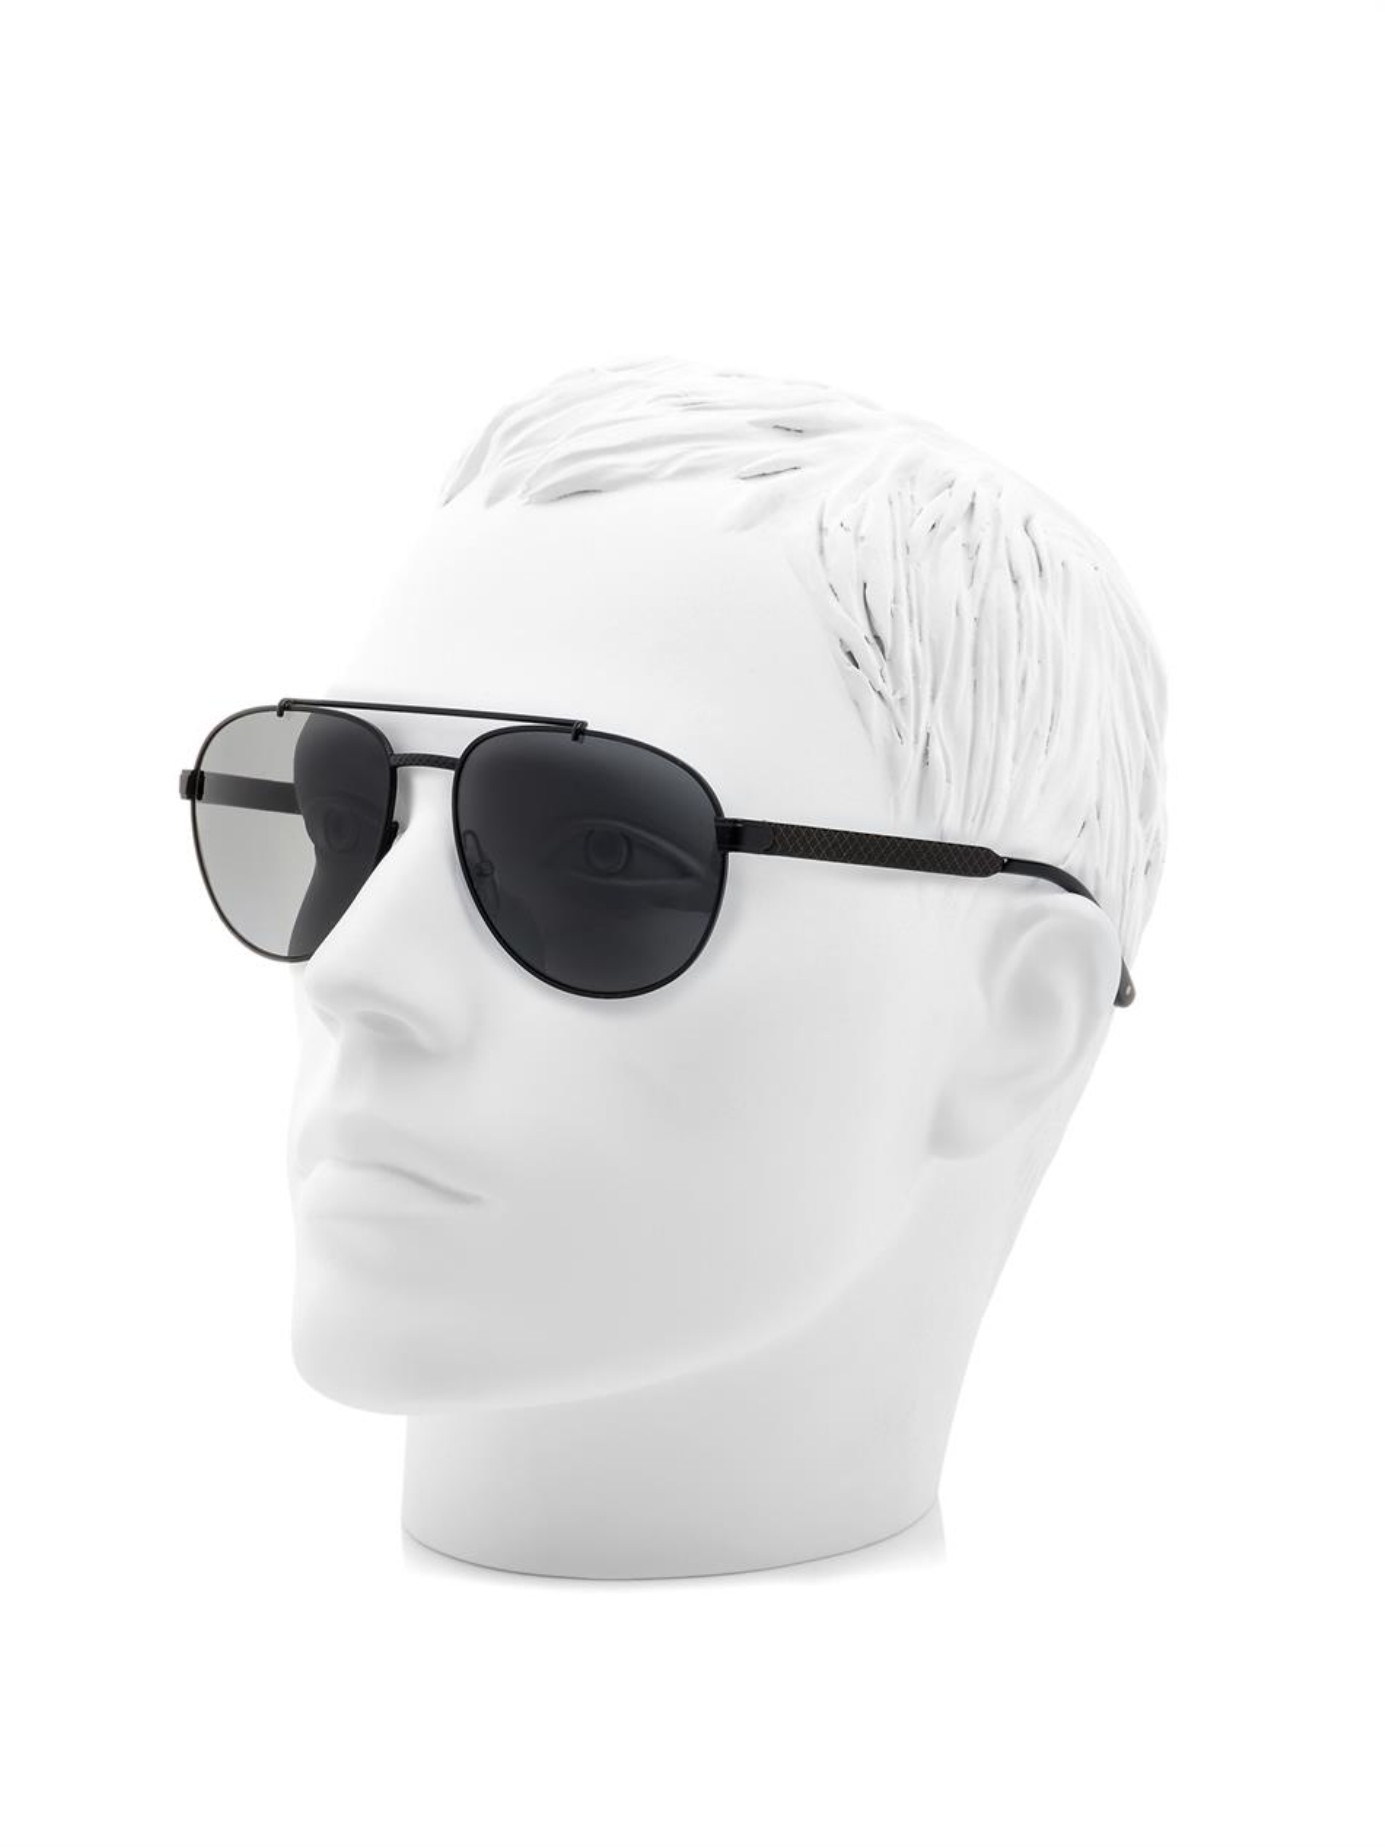 e65d46ed94970 Bottega veneta Leather And Metal Aviator-Style Sunglasses in Black for Men